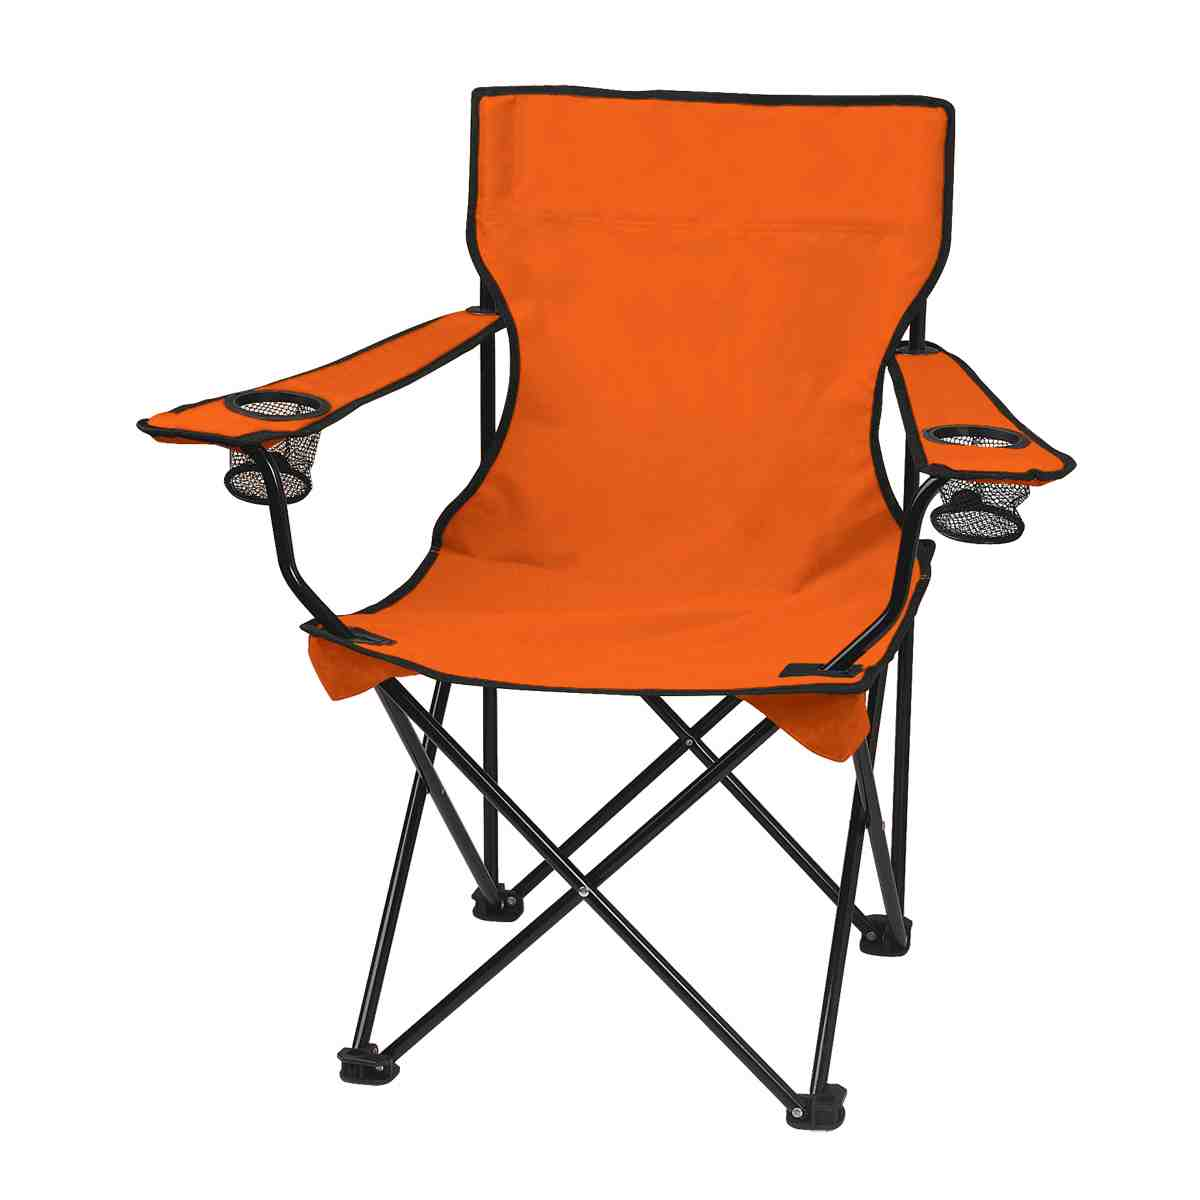 Outdoor Folding Chairs How to Buy the Best for all Seasons Home Furniture